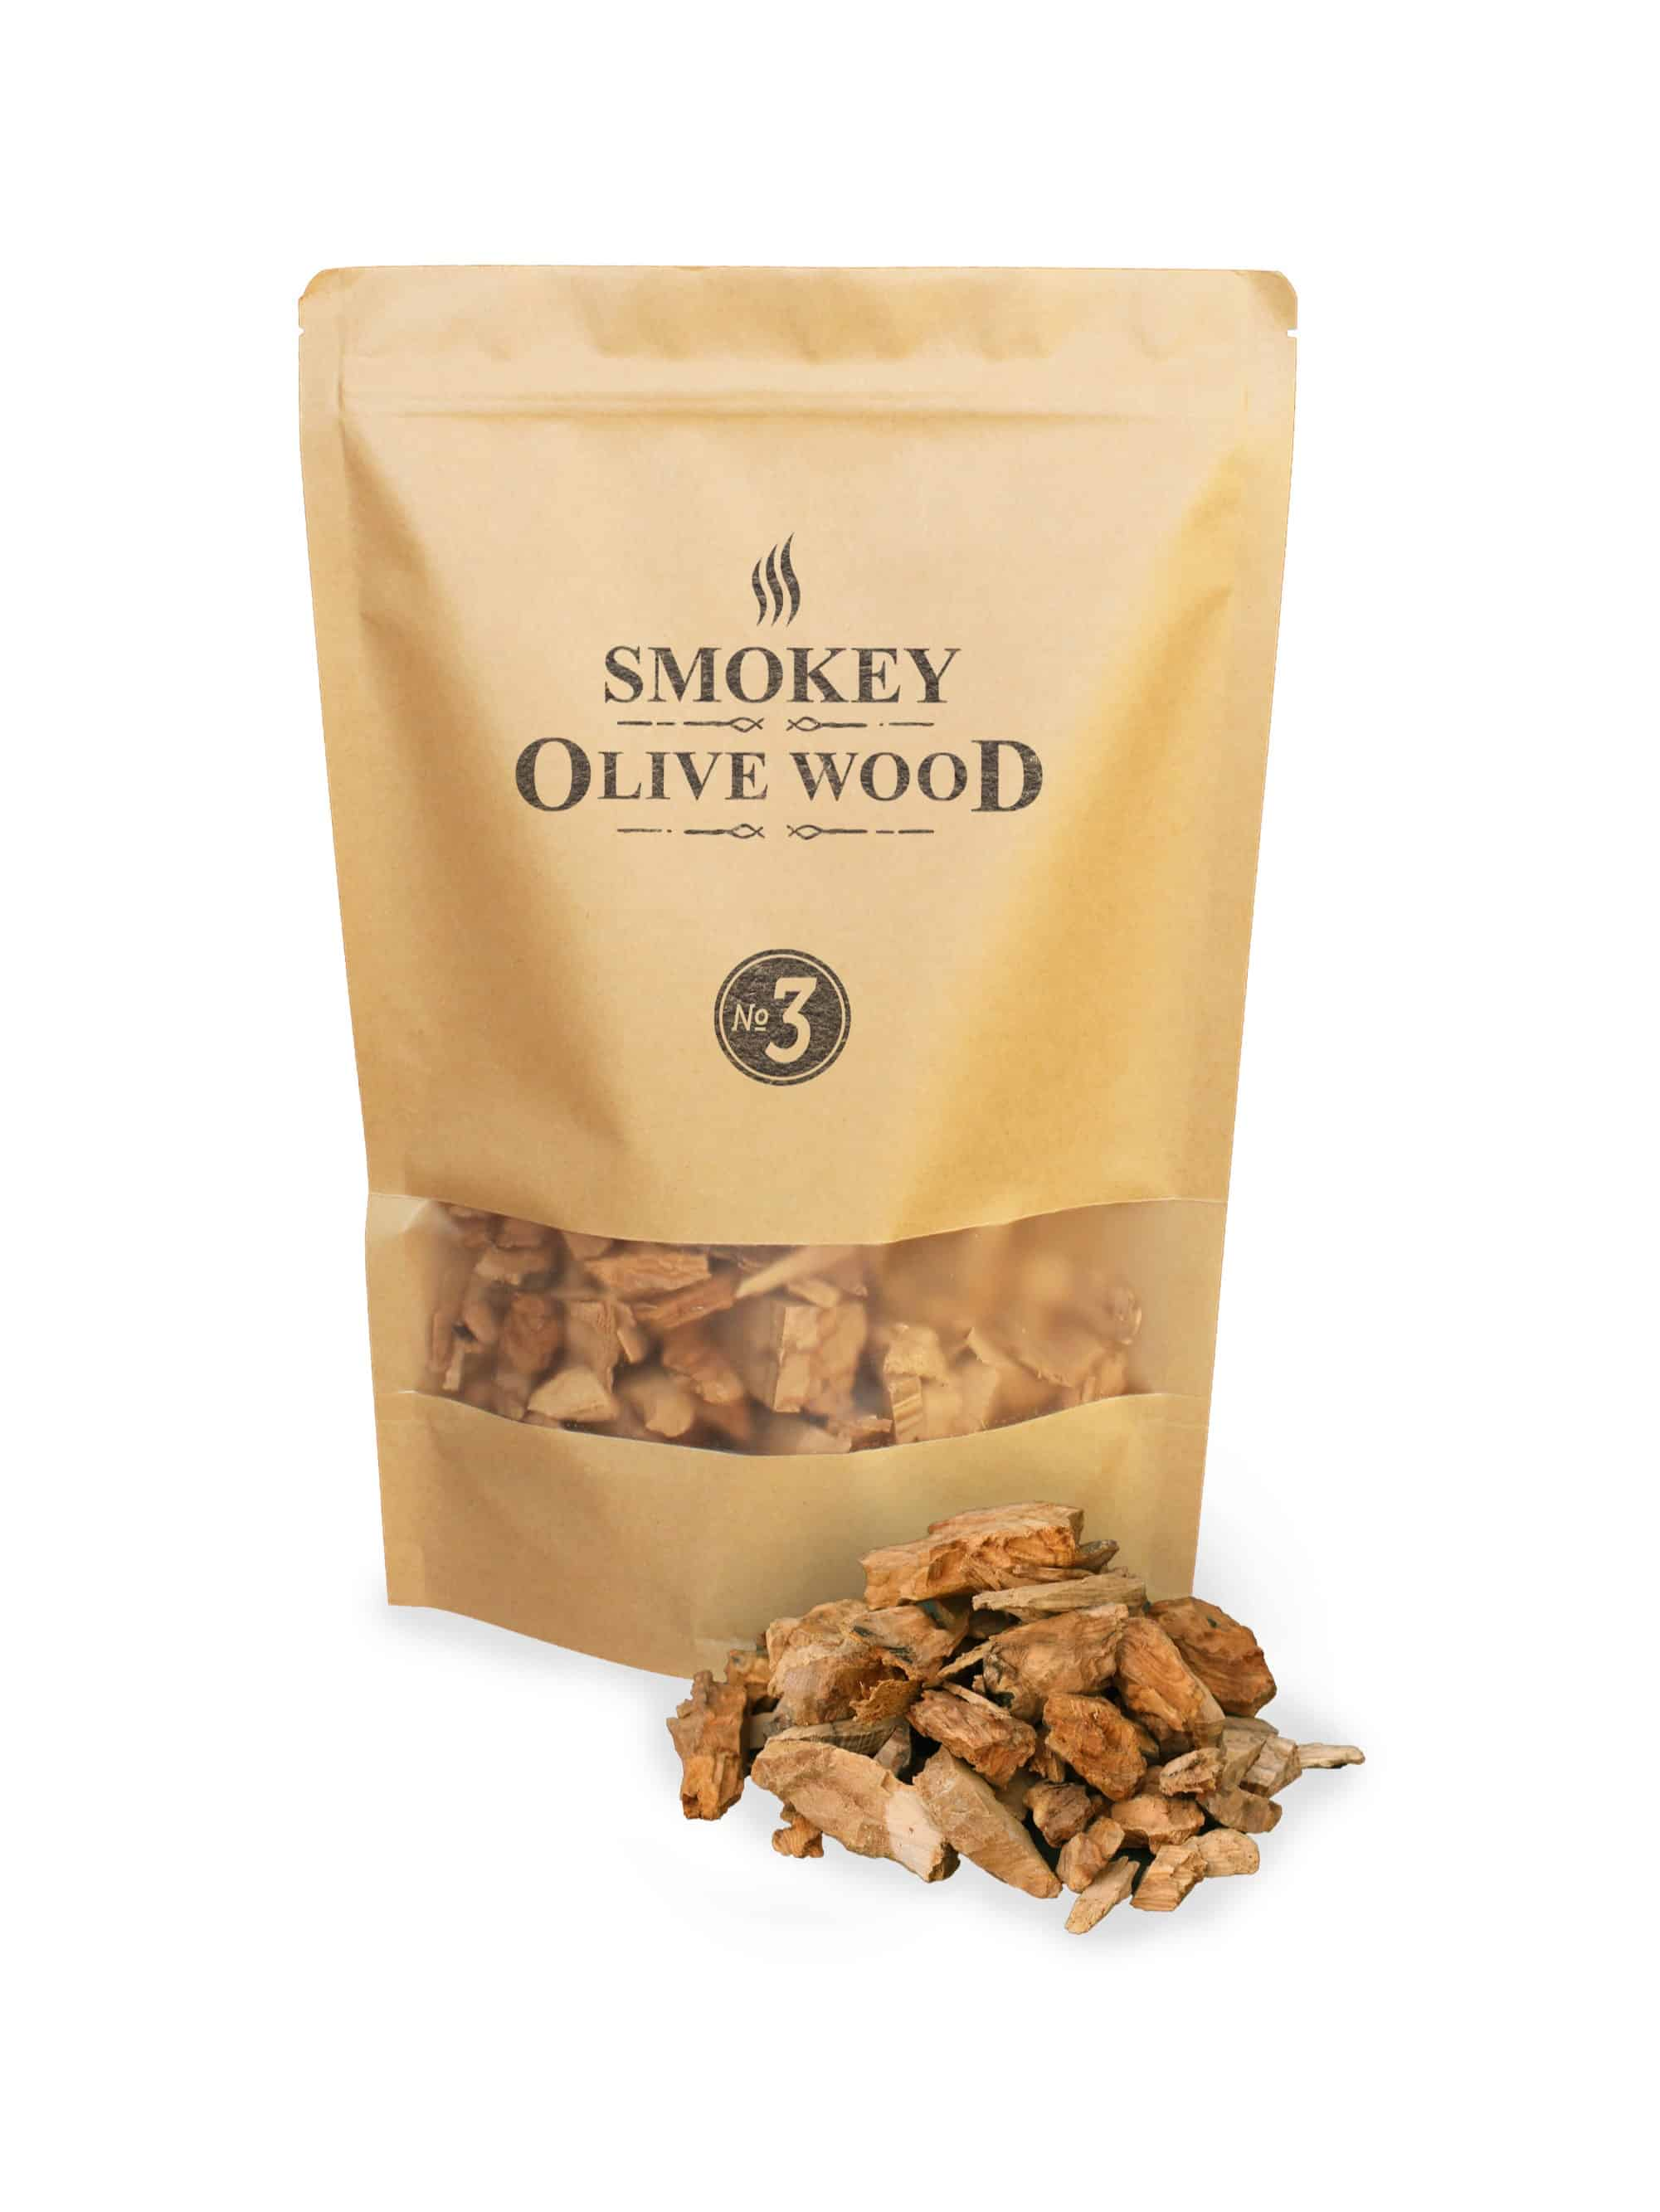 Smokey Olive Wood Smoking Chips Nº3 Smoker BBQ Grill weber